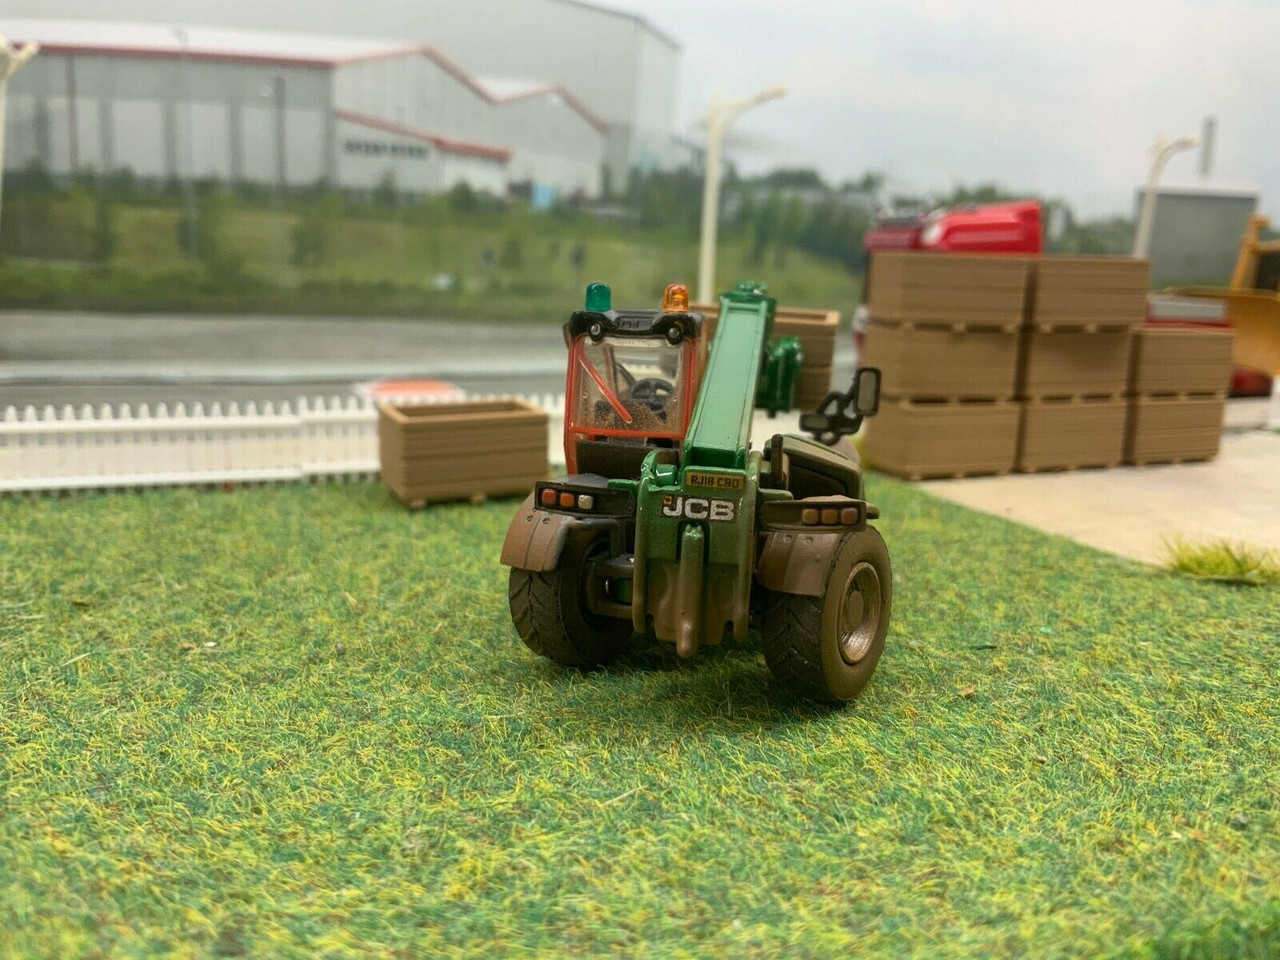 1:76 Oxford Diecast JCB Loadall Clancy plant (WEATHERED)